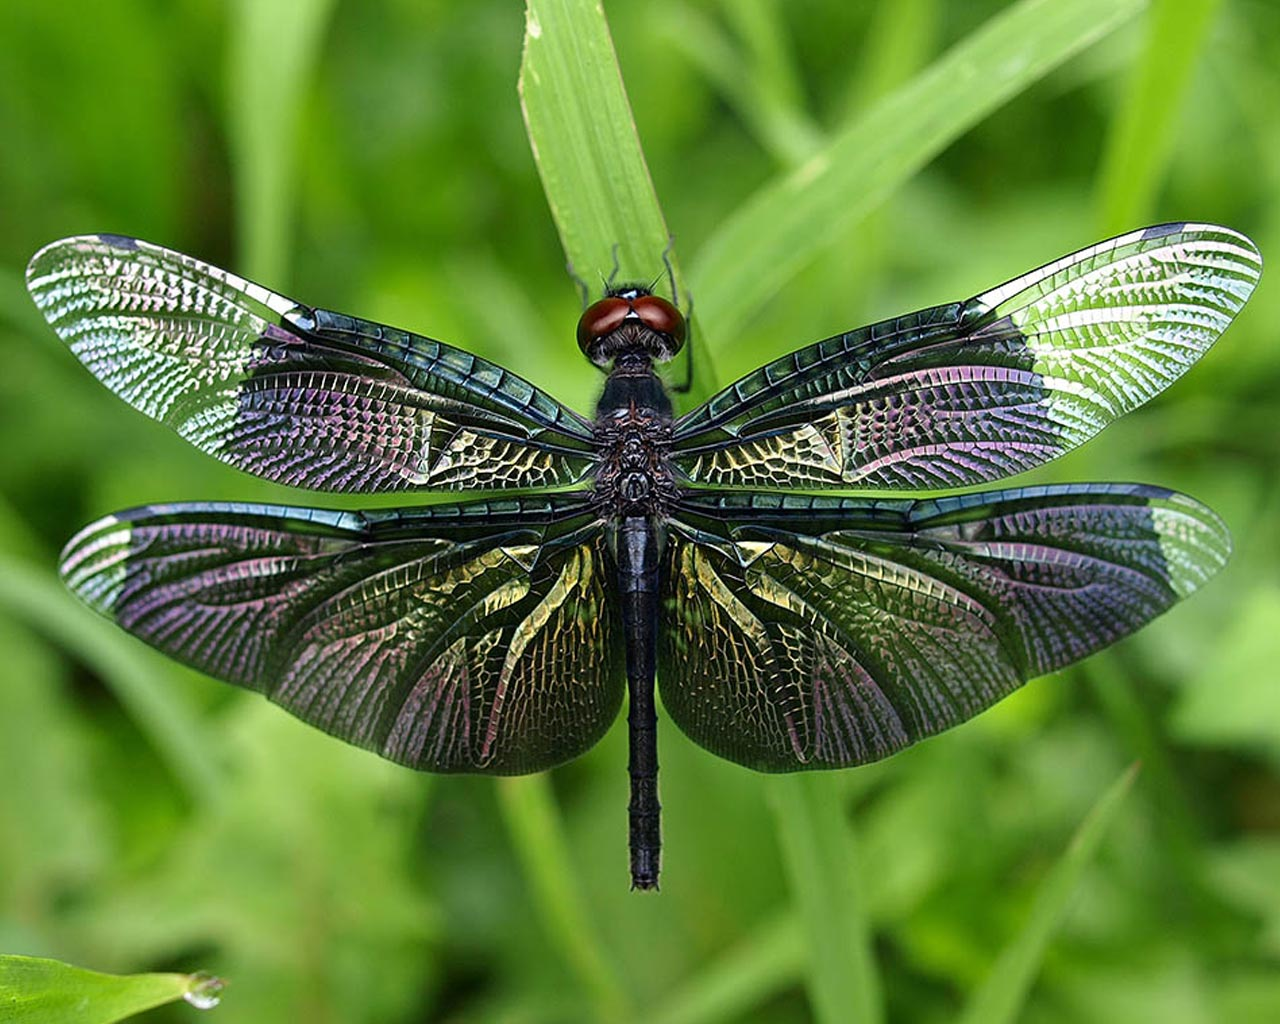 Amazing Dragonfly Insect - Dragonfly Facts, Images ...